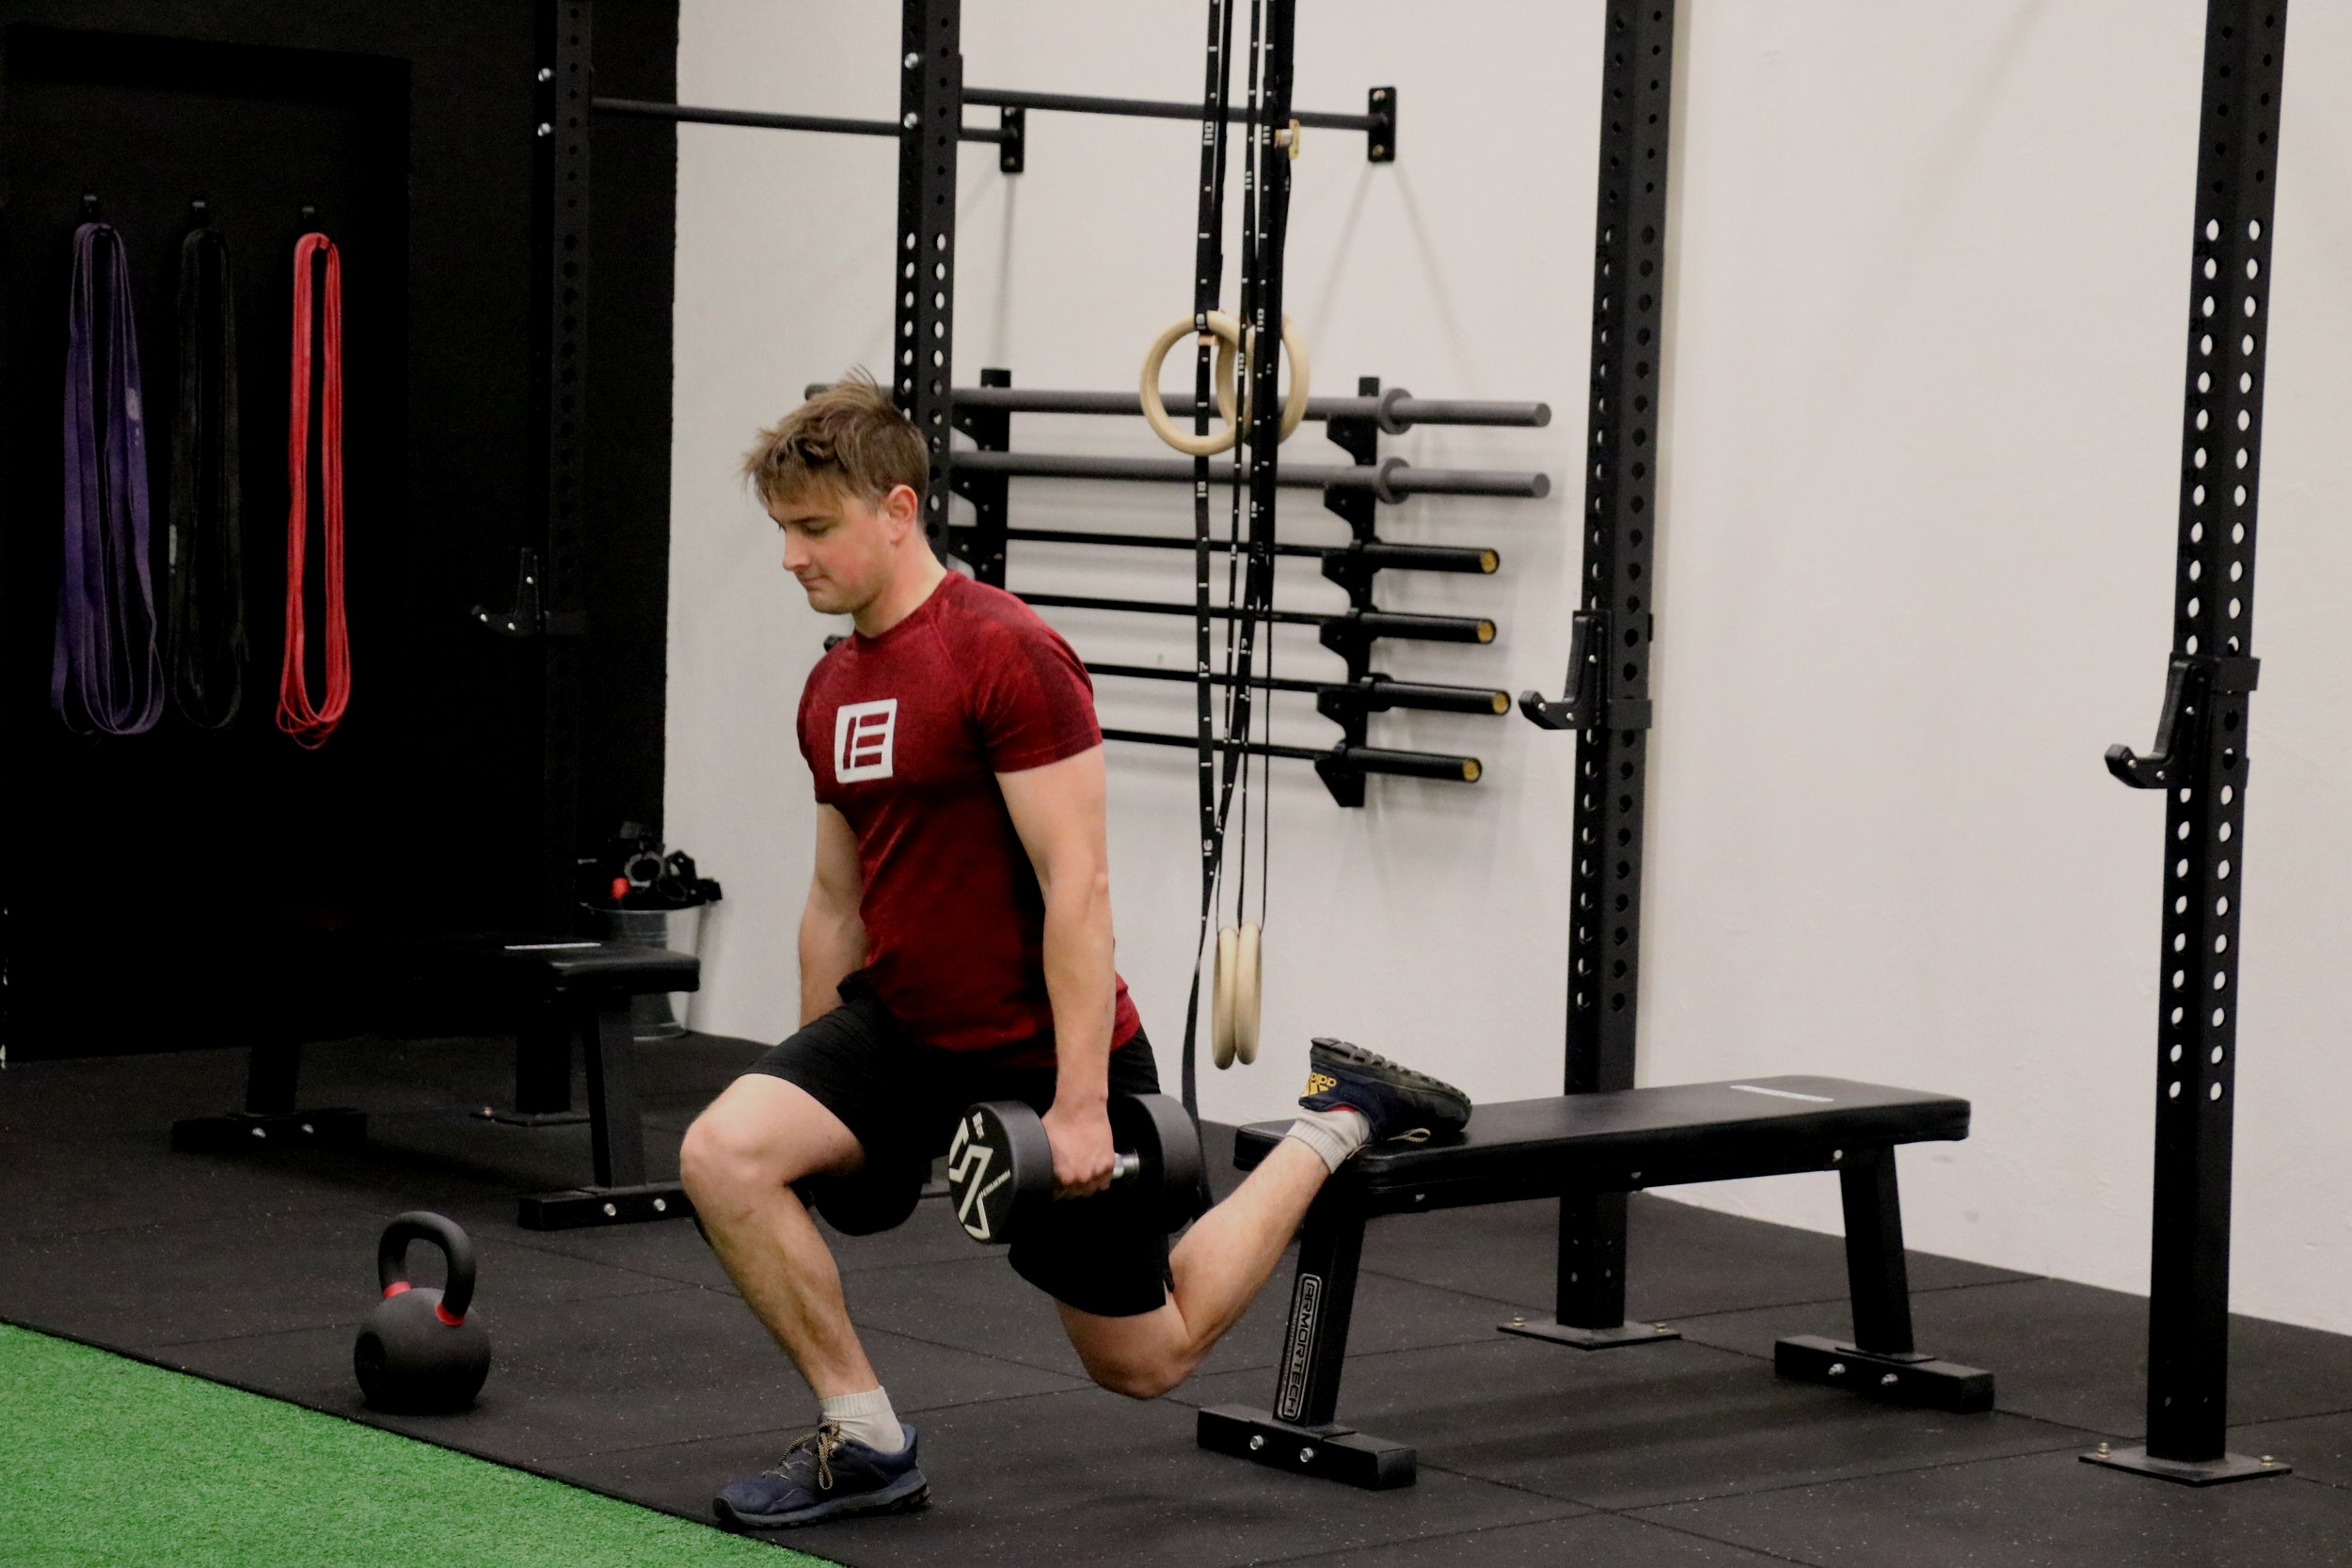 mvmnt _ (movement) - Our bodies were designed to move. Let us show you how to move yours better - using dumbbells, kettlebells and more.